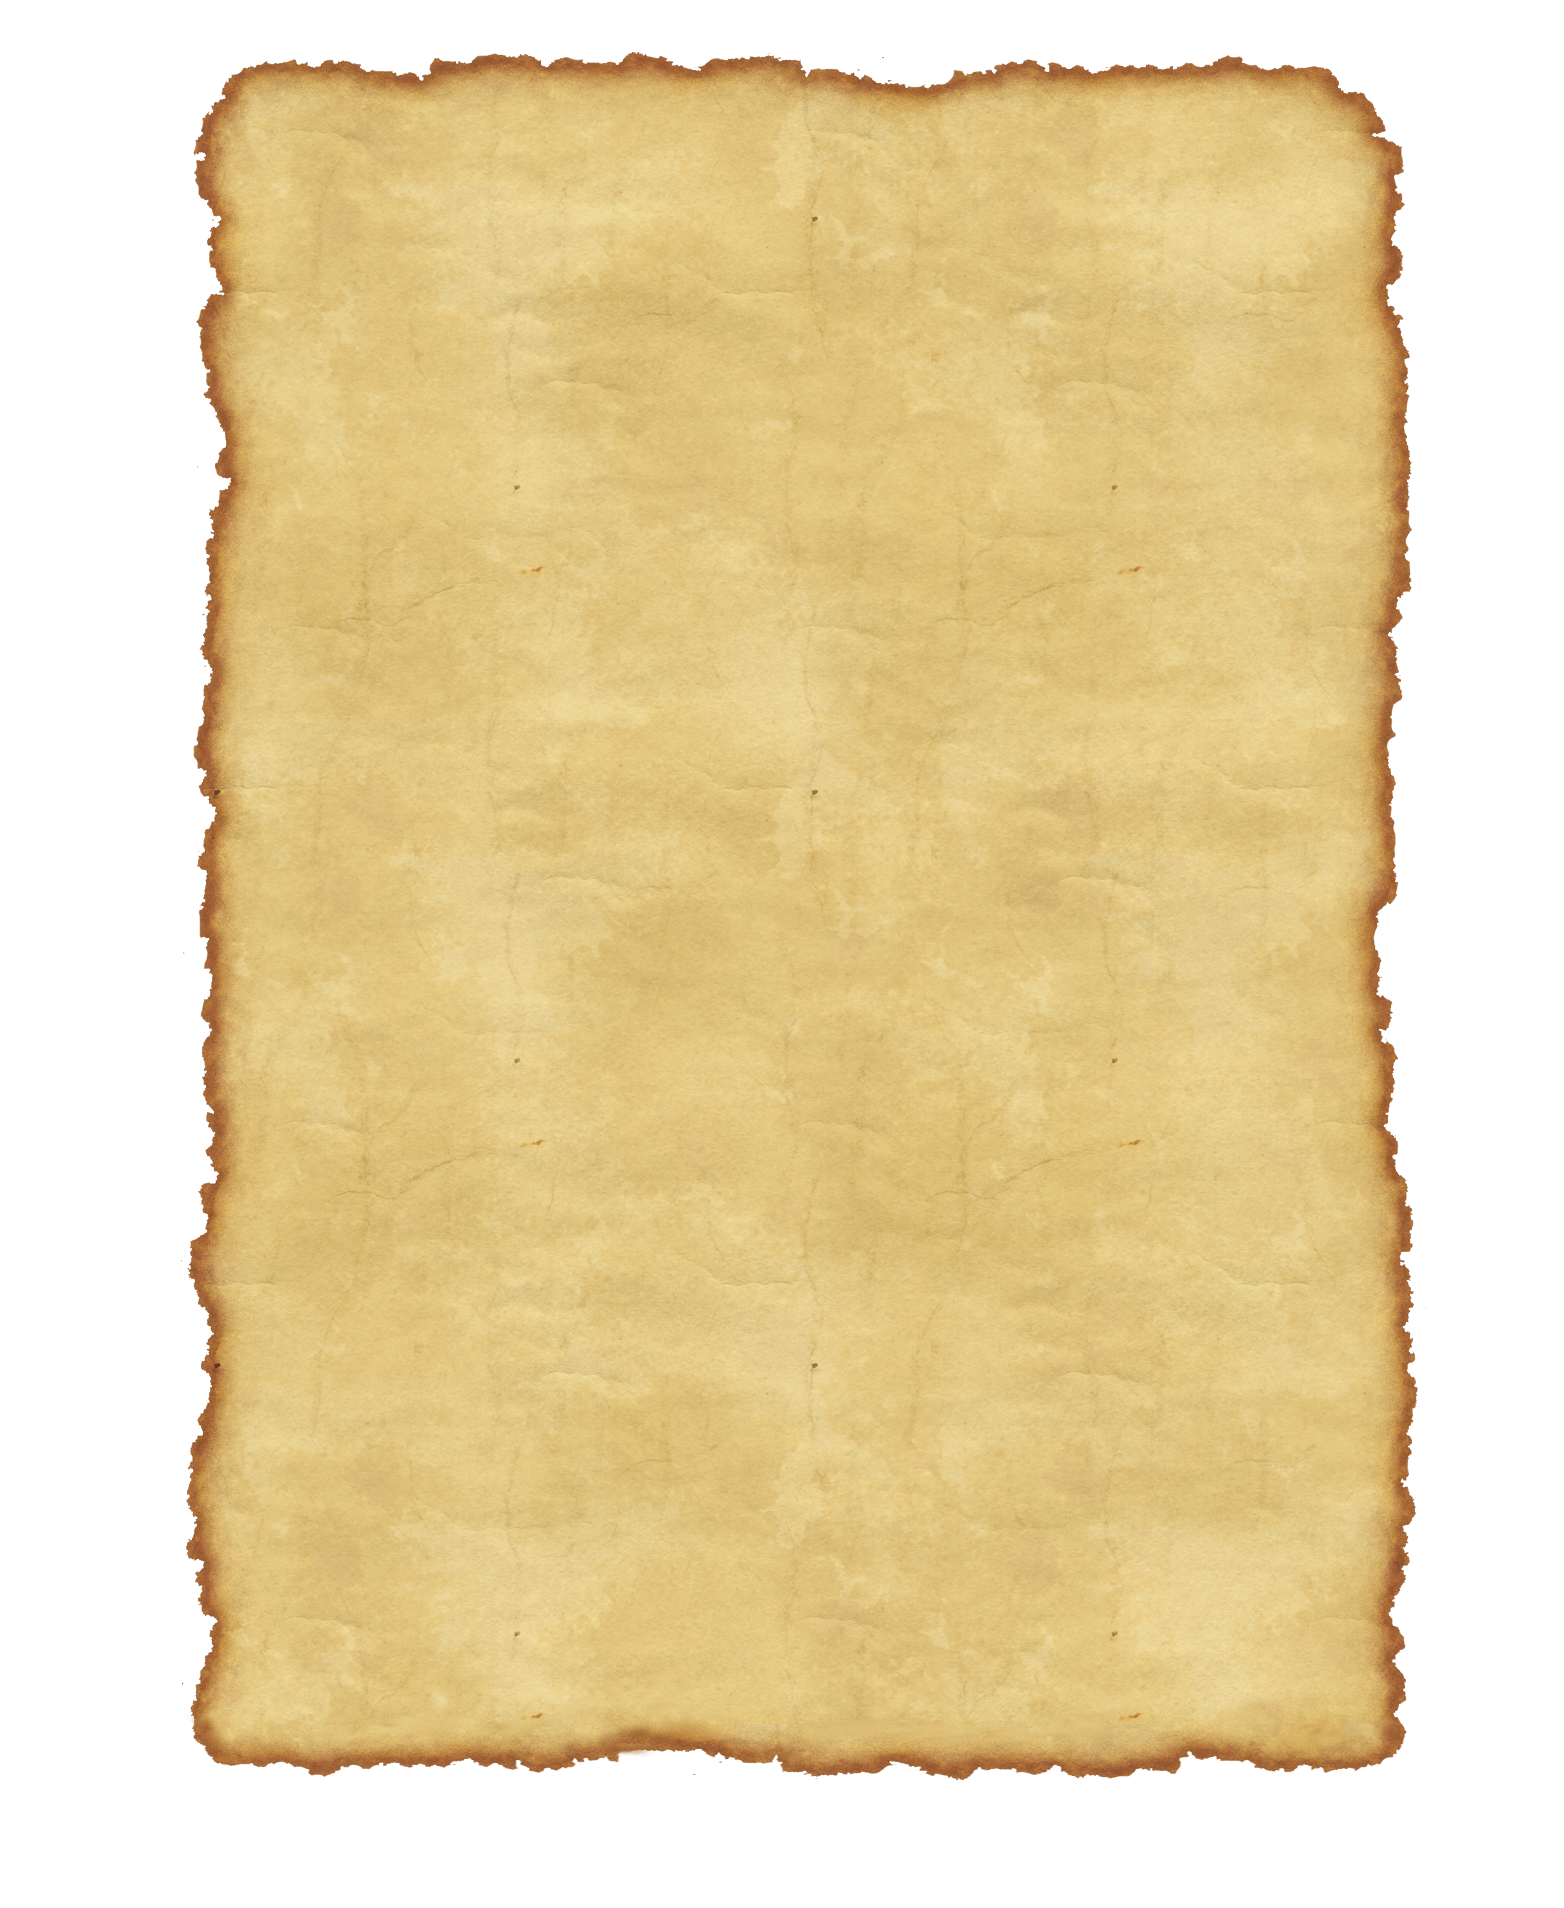 Free Old Paper Transparent Background, Download Free Clip.